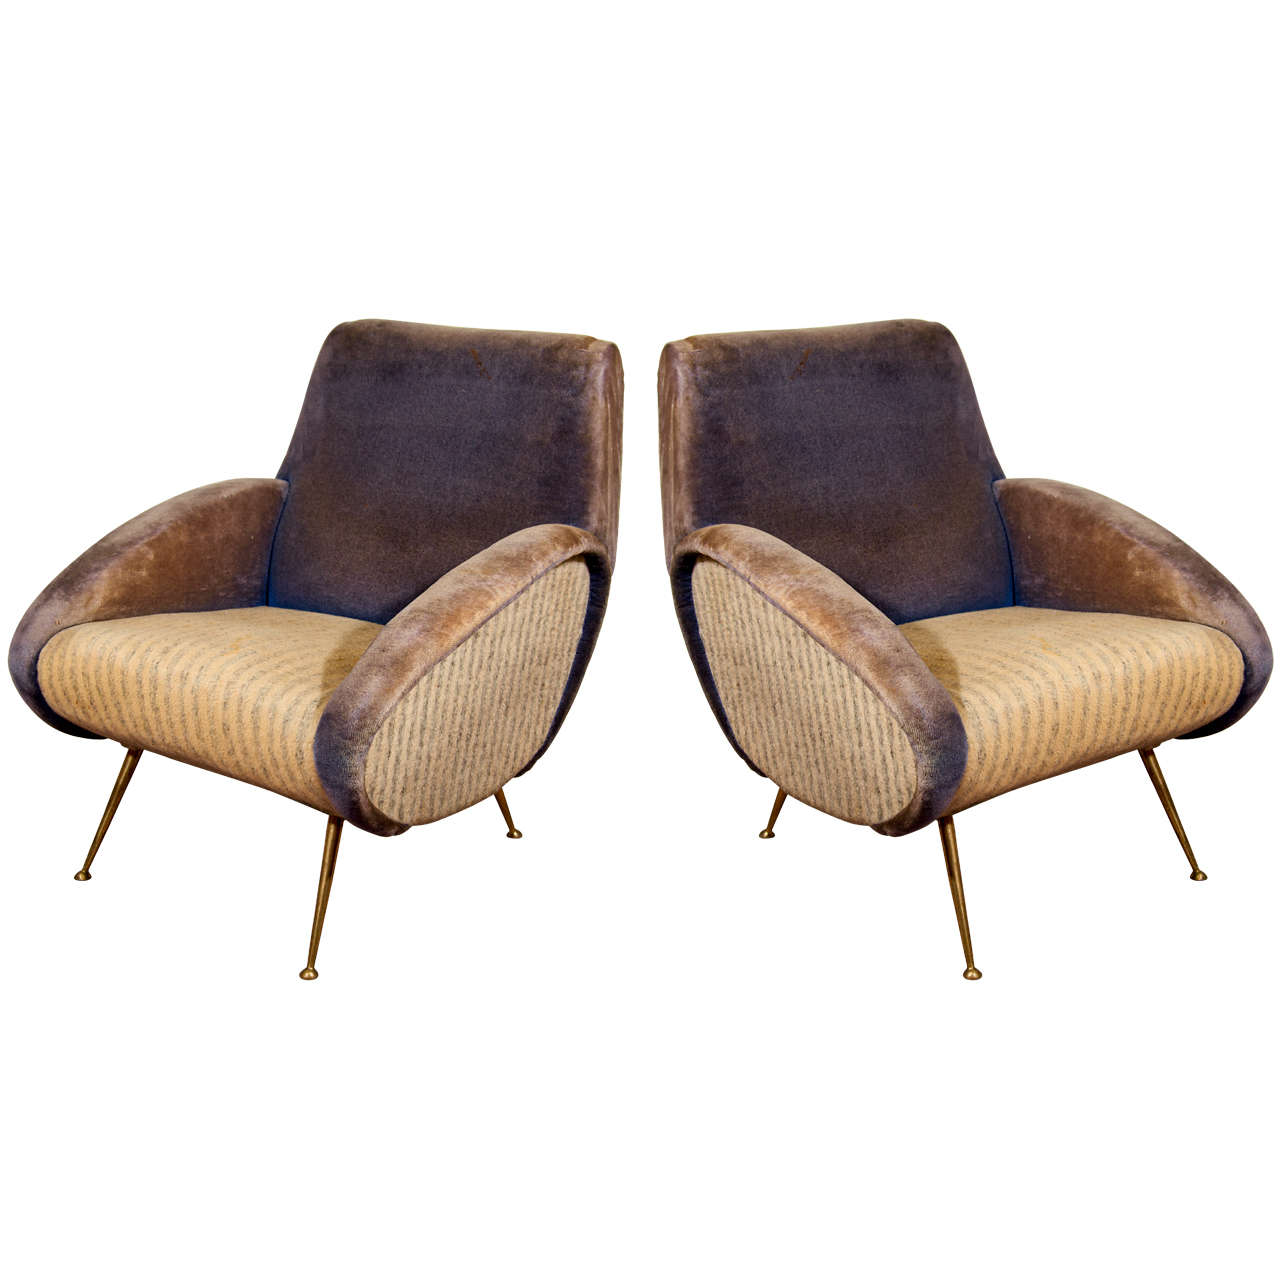 Charmant Pair Of Mid Century Lounge Chairs Attributed To Gio Ponti For Sale